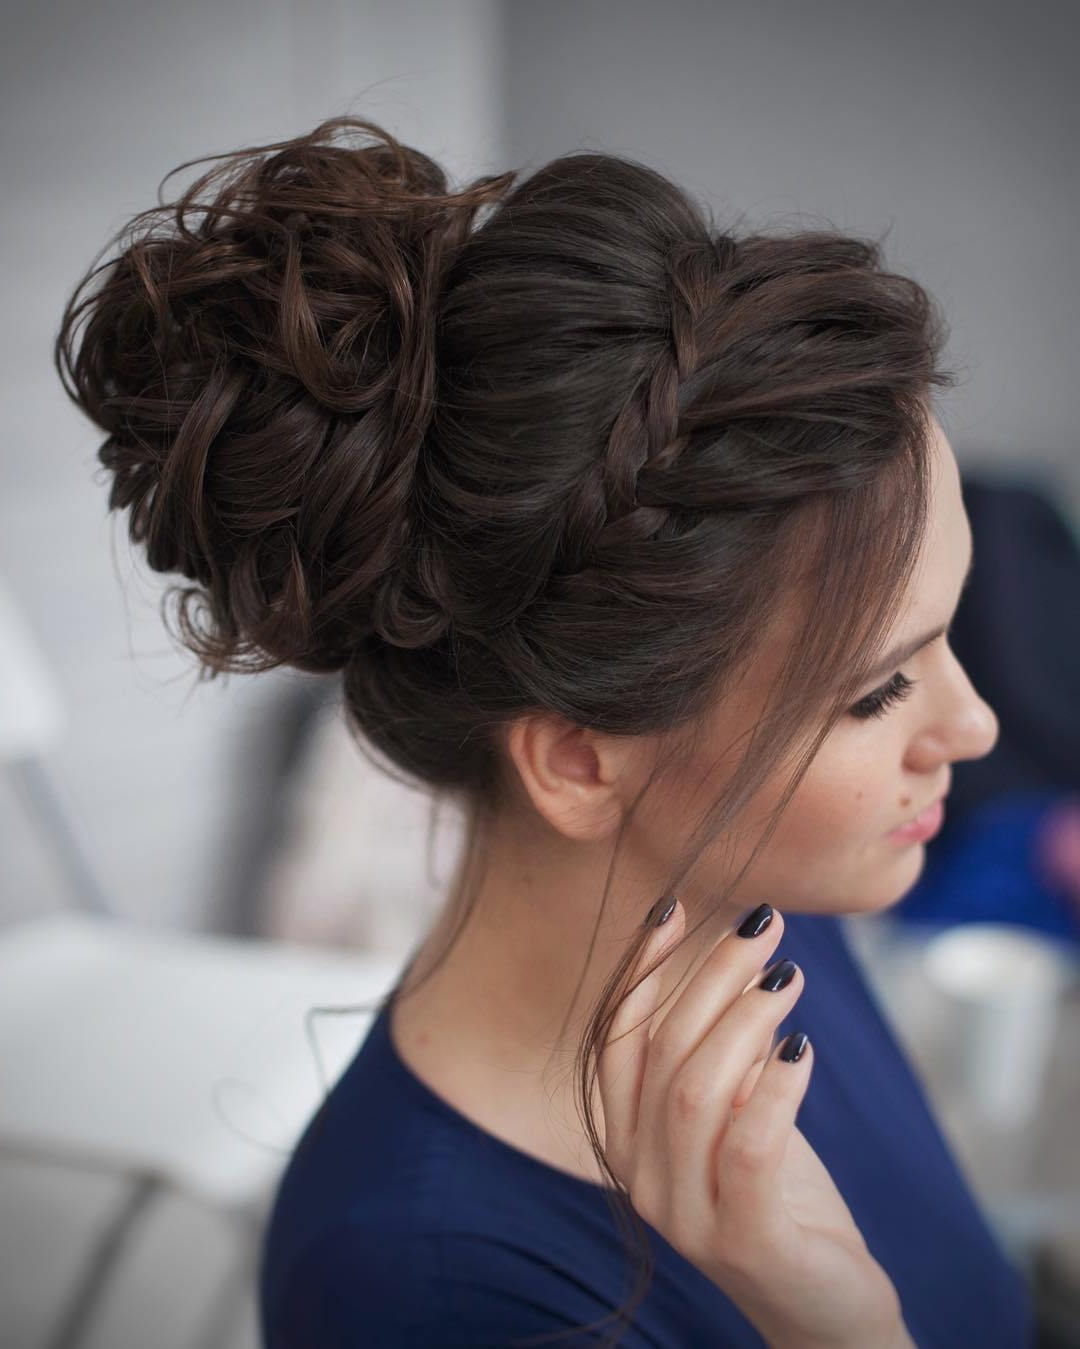 Prom Updos Archives – Trubridal Wedding Blog Throughout Favorite Upside Down Braid And Bun Prom Hairstyles (View 15 of 20)